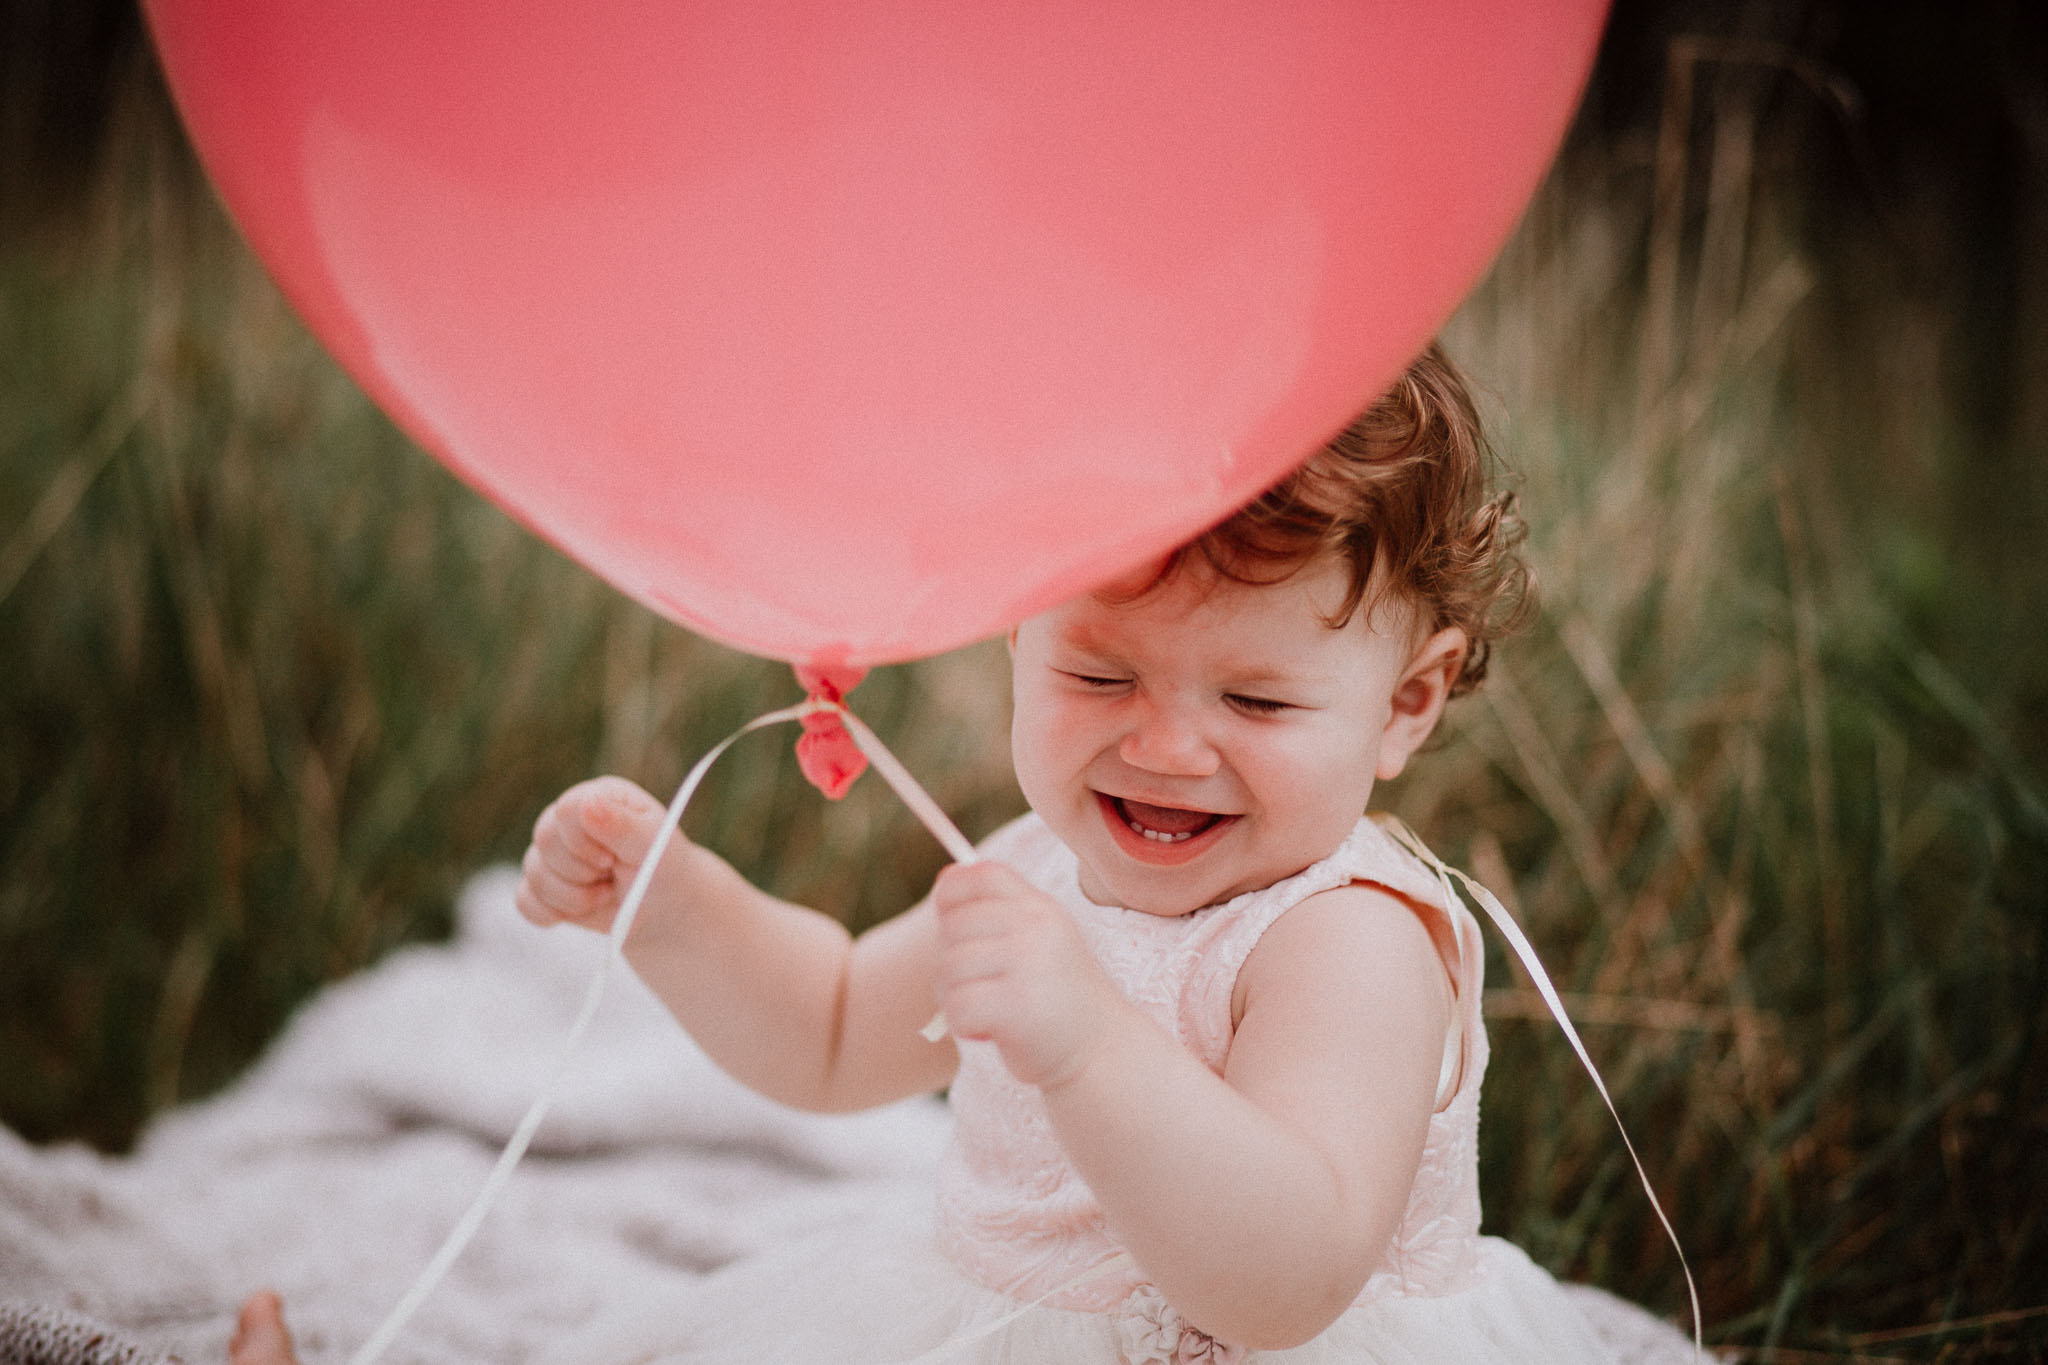 Toddler one year old girl pink balloon laughing Sterling Virginia Claude Moore Park Lifestyle Family Marti Austin Photography